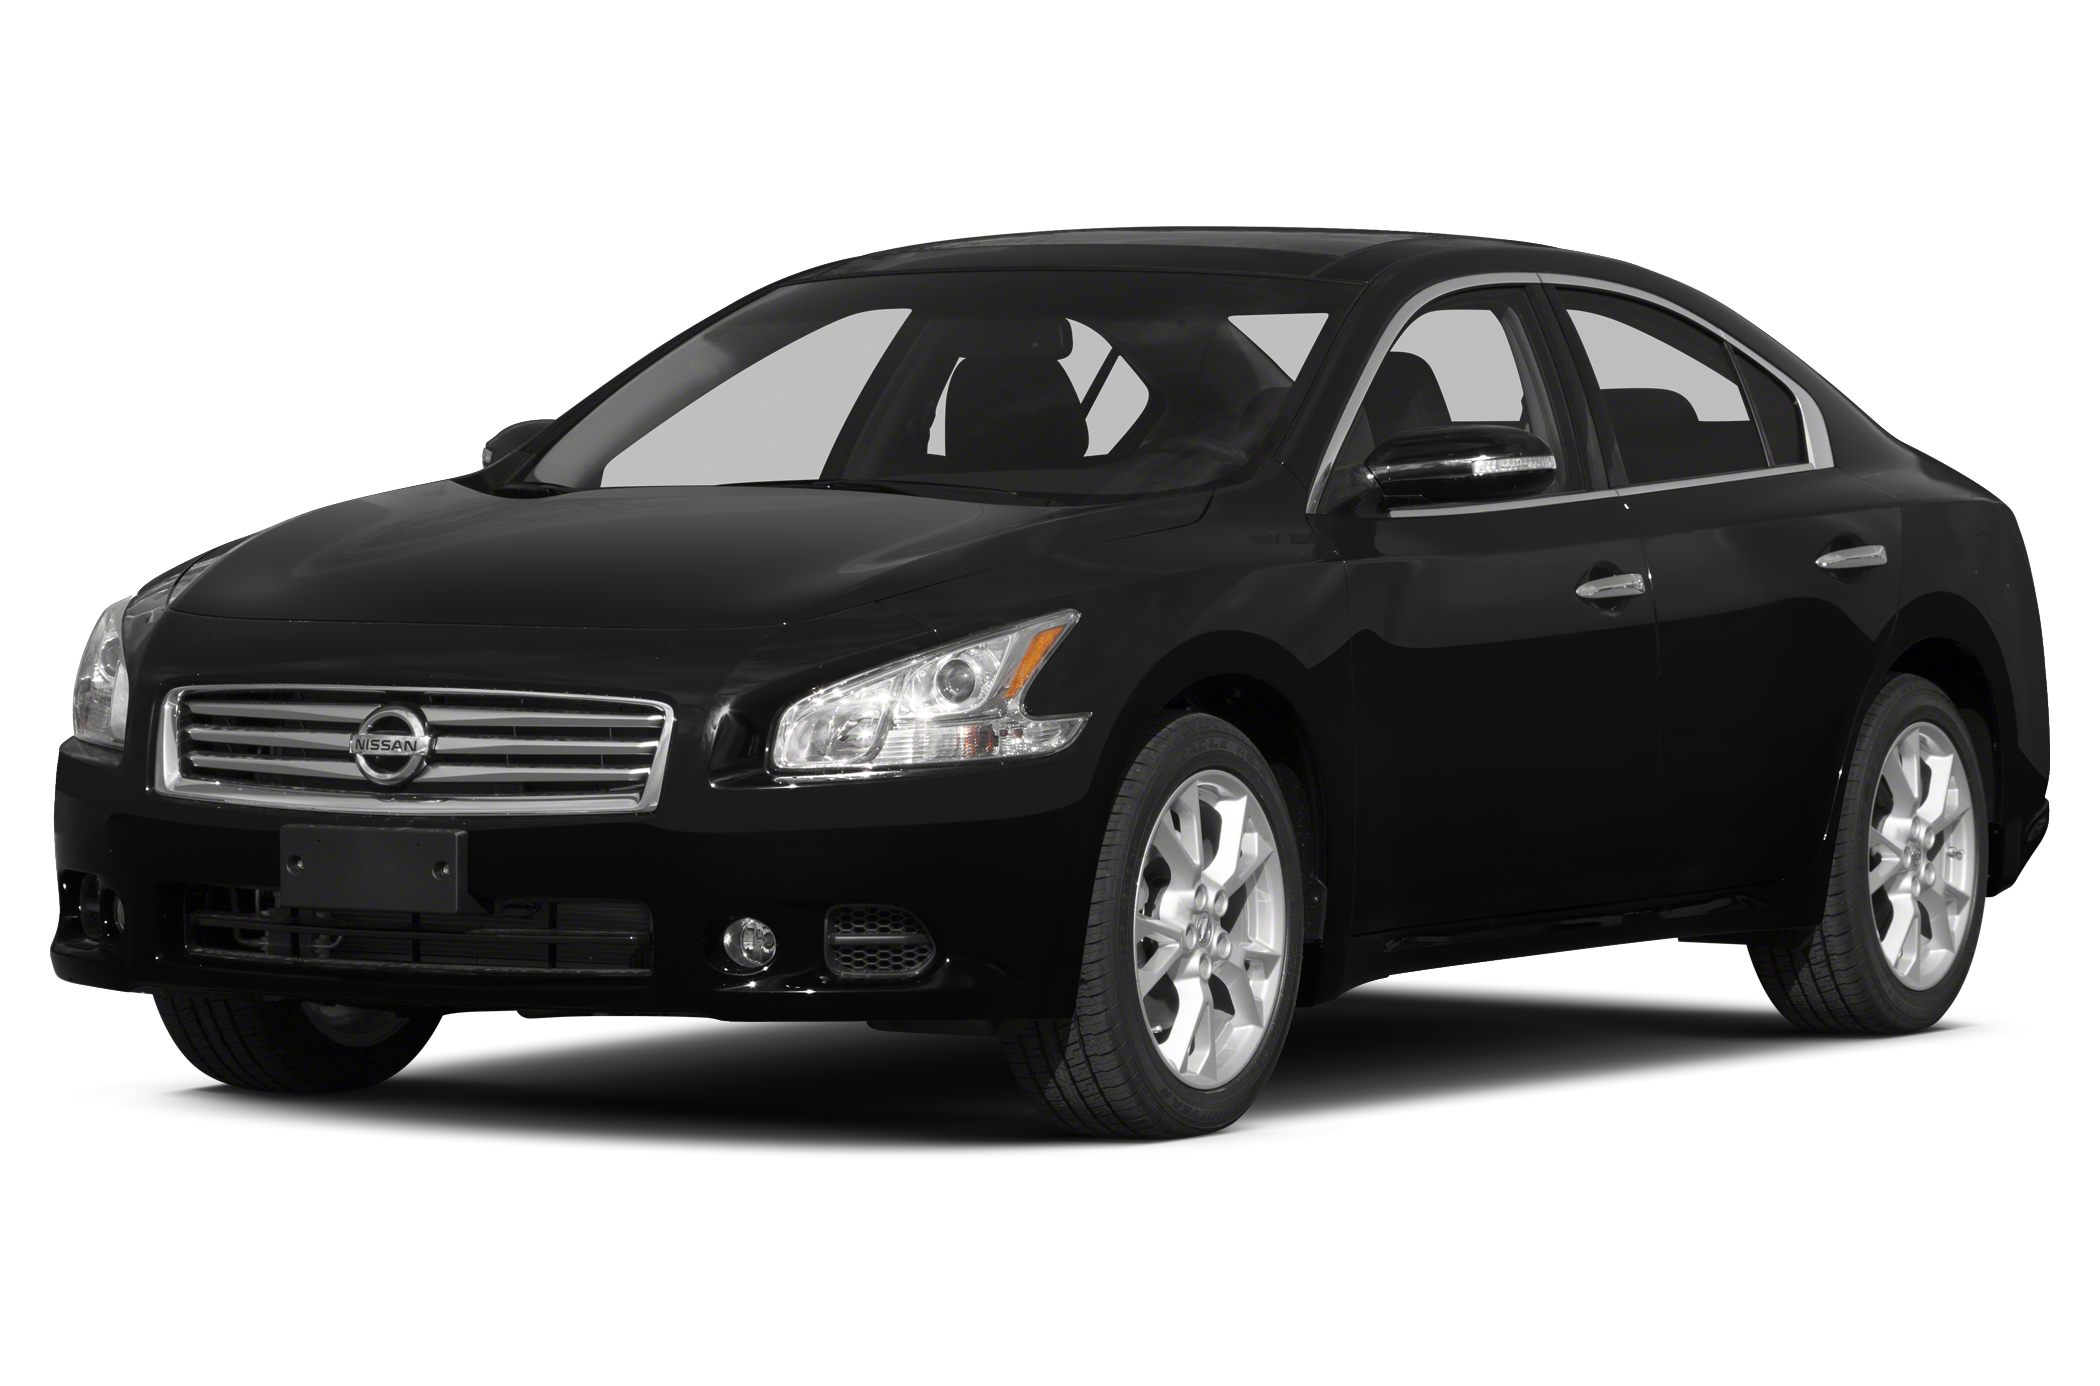 2014 Nissan Maxima S Sedan for sale in Hawthorne for $33,435 with 12 miles.